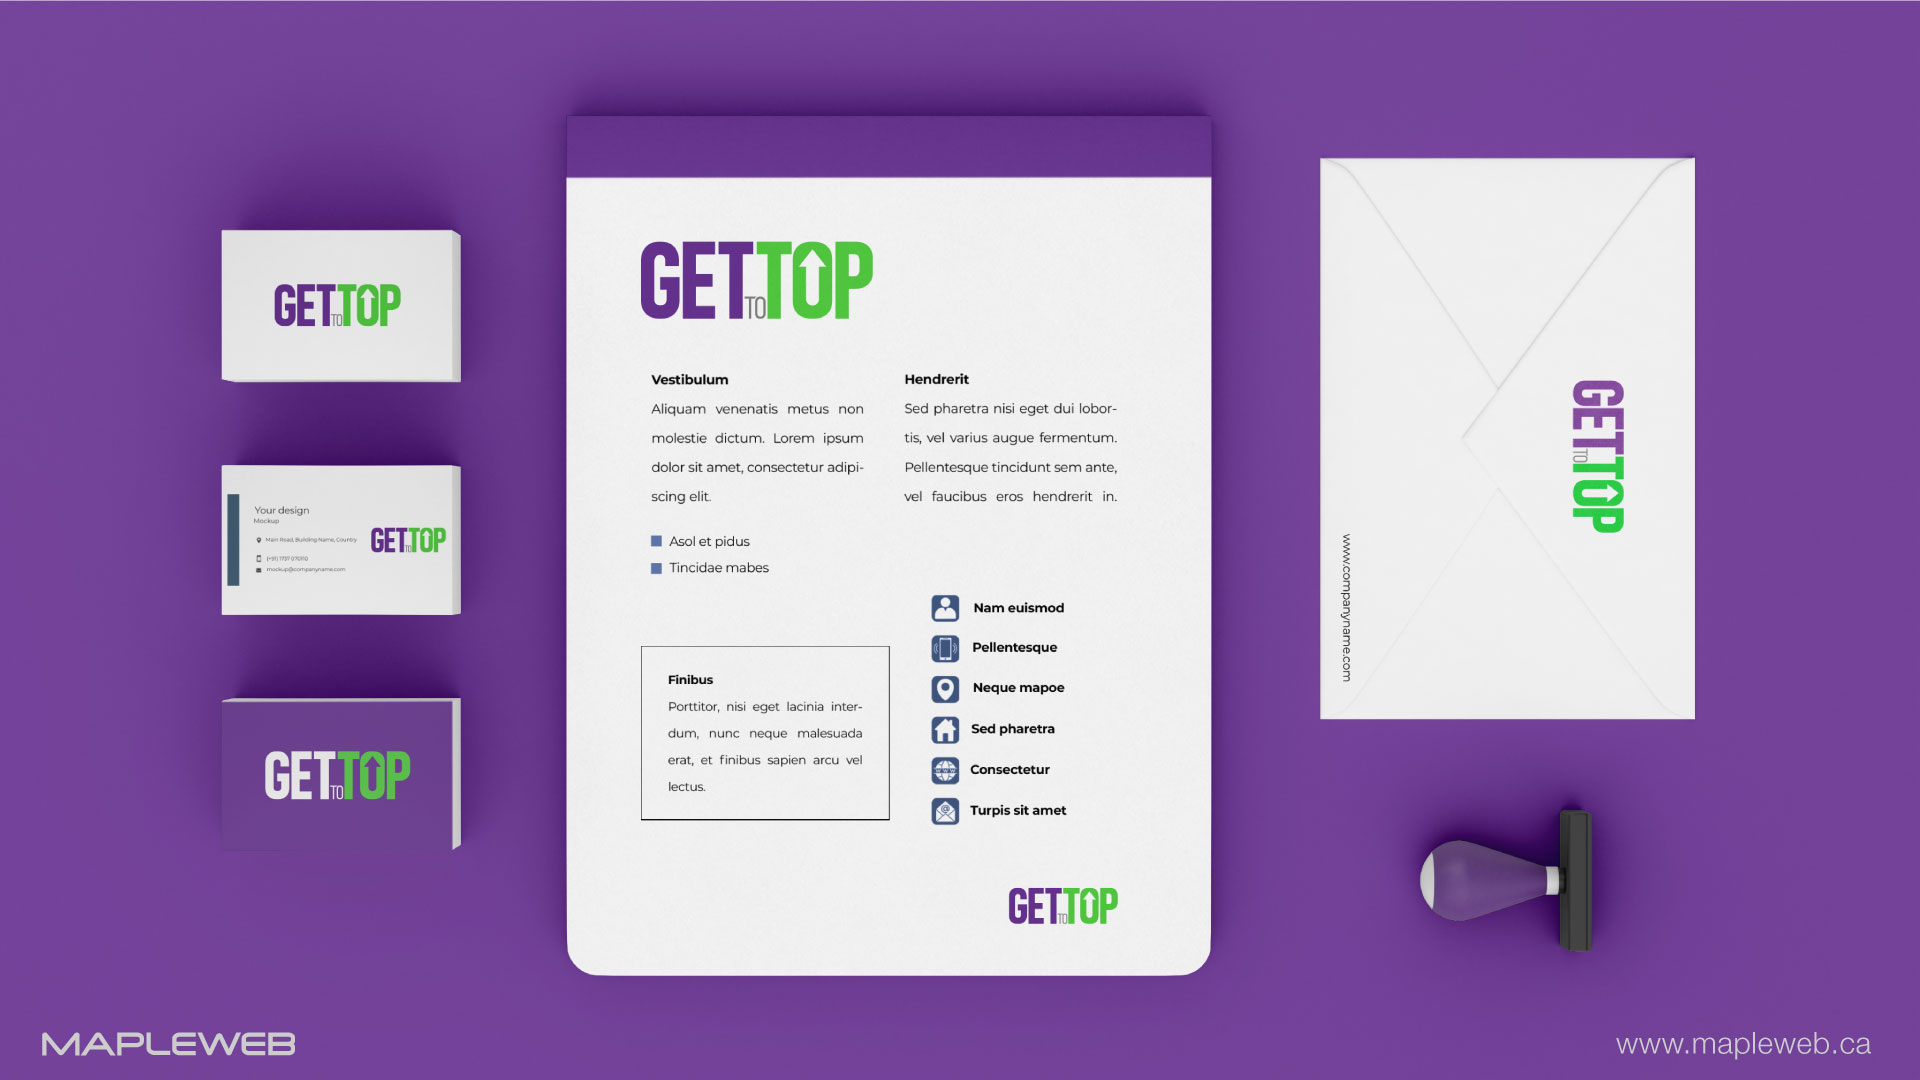 gettotop-brand-logo-design-by-mapleweb-vancouver-canada-stationery-purple-mock